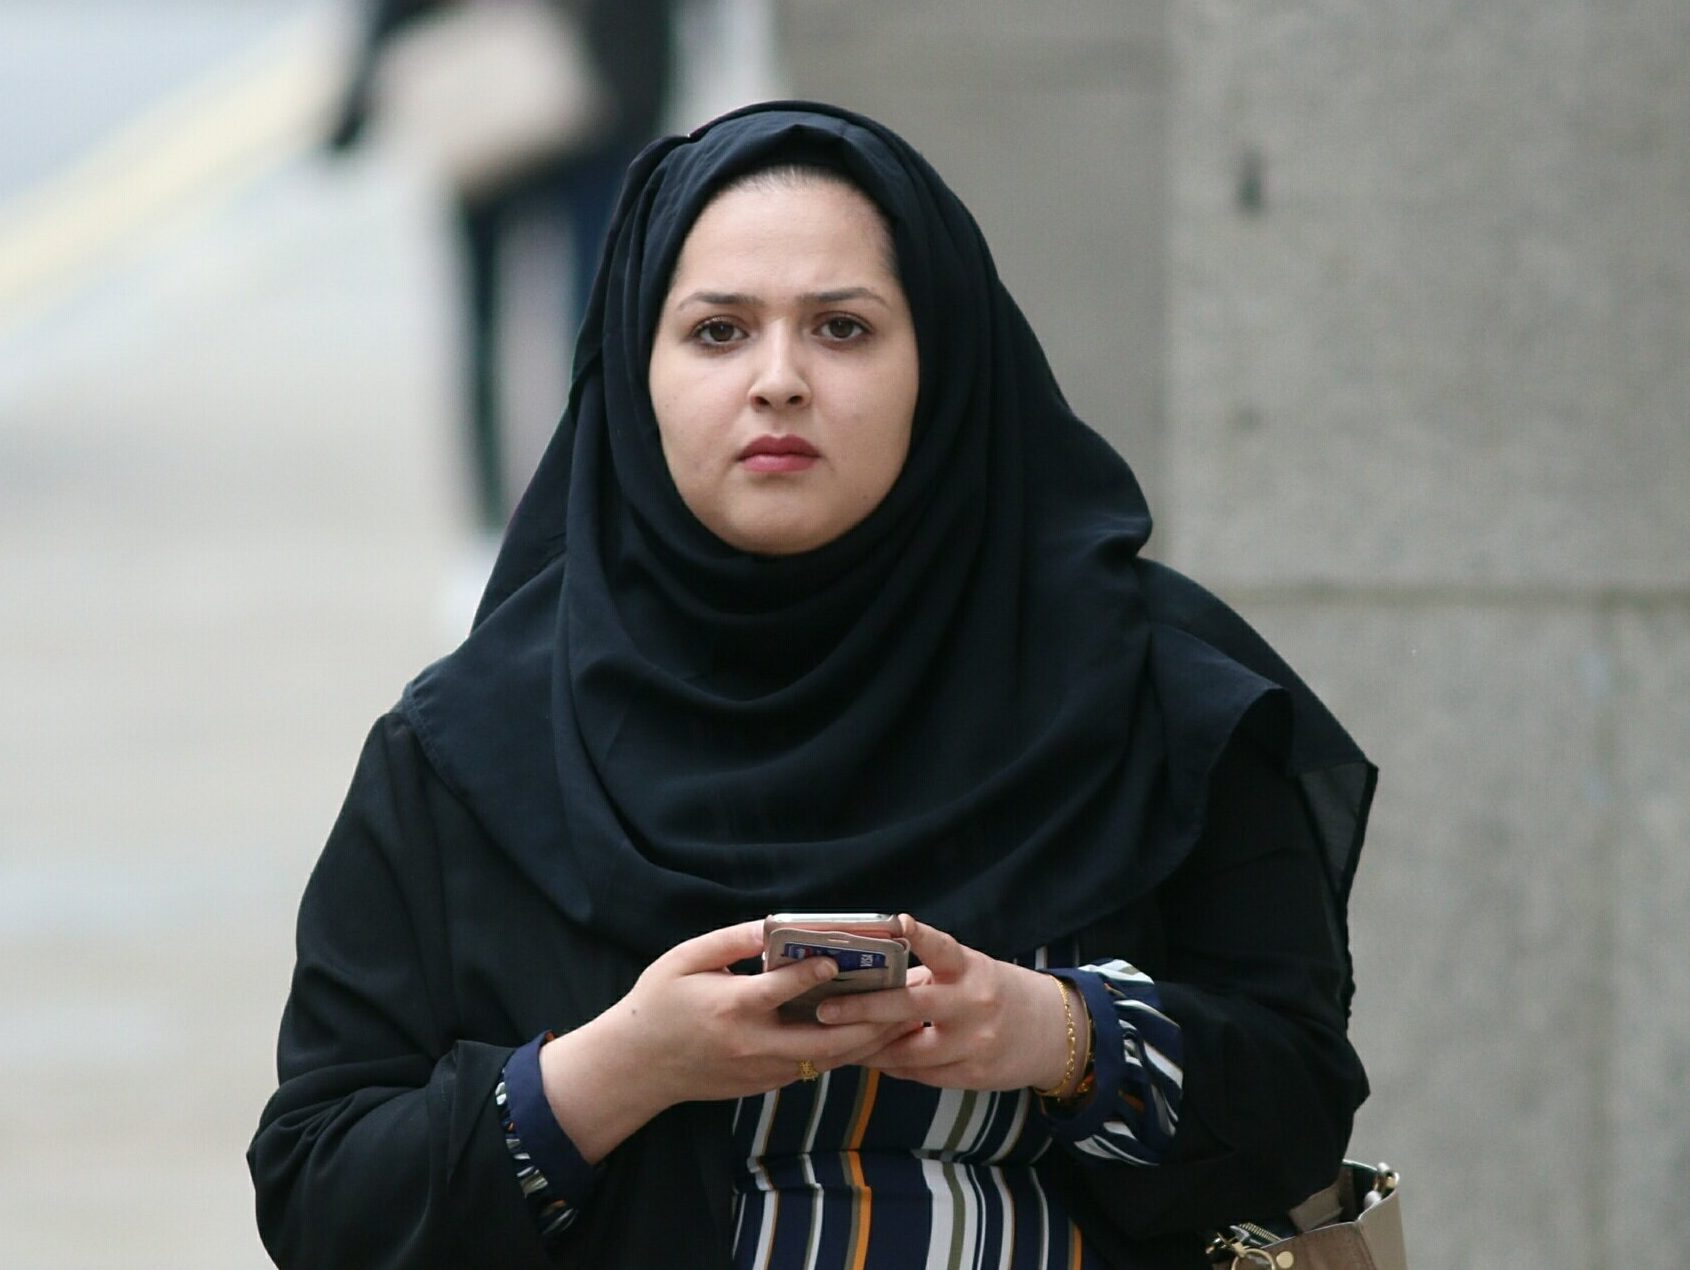 Pic shows Fatima Khan at the Old Bailey. An Afghani refugee showered his girfriend with affectionate messages and gifts just days before she set up his murder and filmed him bleeding to death, a court heard. Snapchat addict Fatima Khan, 20, allegedly urged Raza Khan, 19, to stab 18-year-old Khalid Safi outside a Costa Coffee in Acton, west London. Ms Khan filmed the scene and posted it to the social media site with the caption 'This is what happens when you f*** with me,' the Old Bailey heard. SEE STORY CENTRAL NEWS